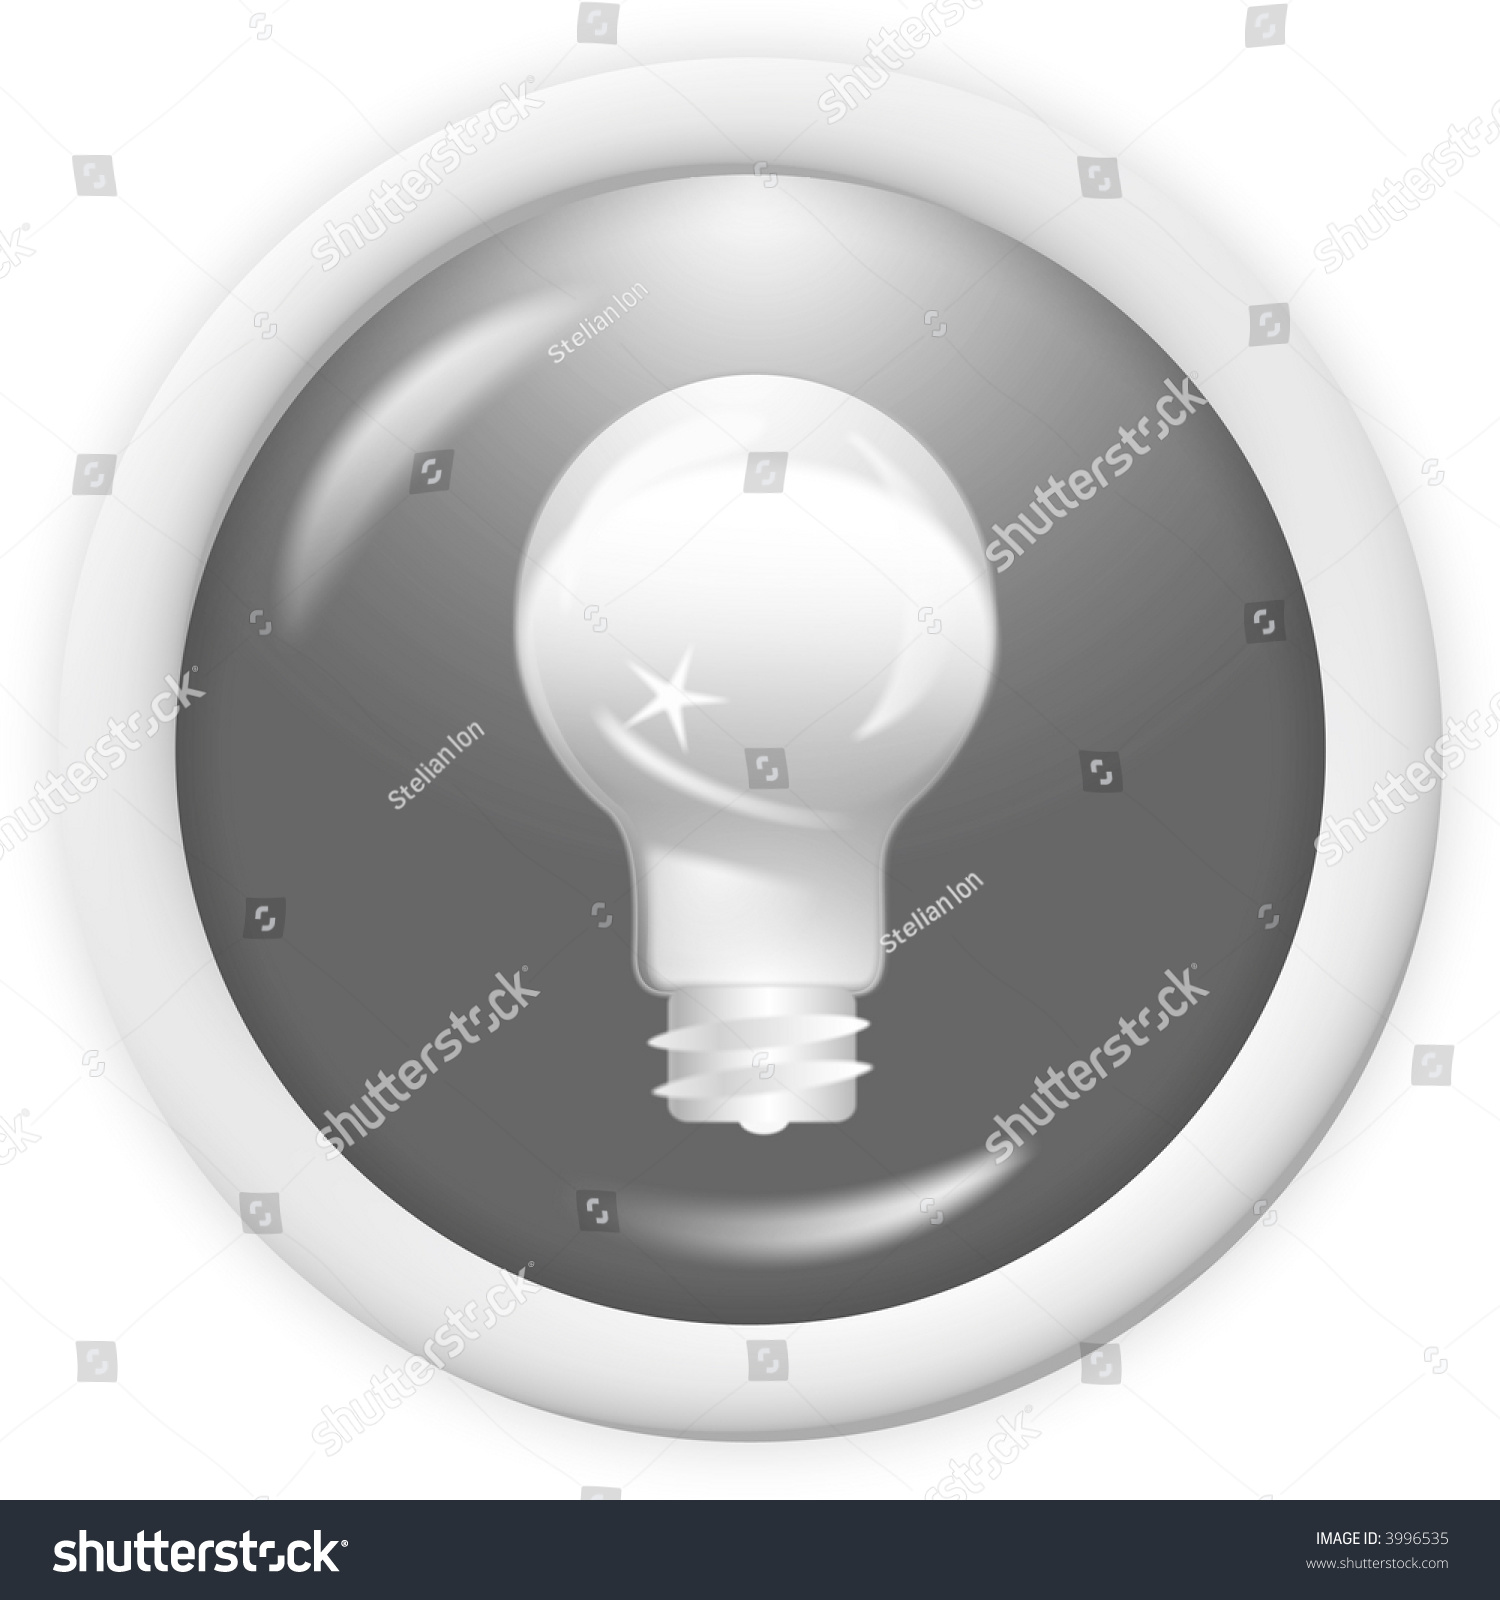 Exelent Symbol For Bulb Illustration - Electrical and Wiring Diagram ...